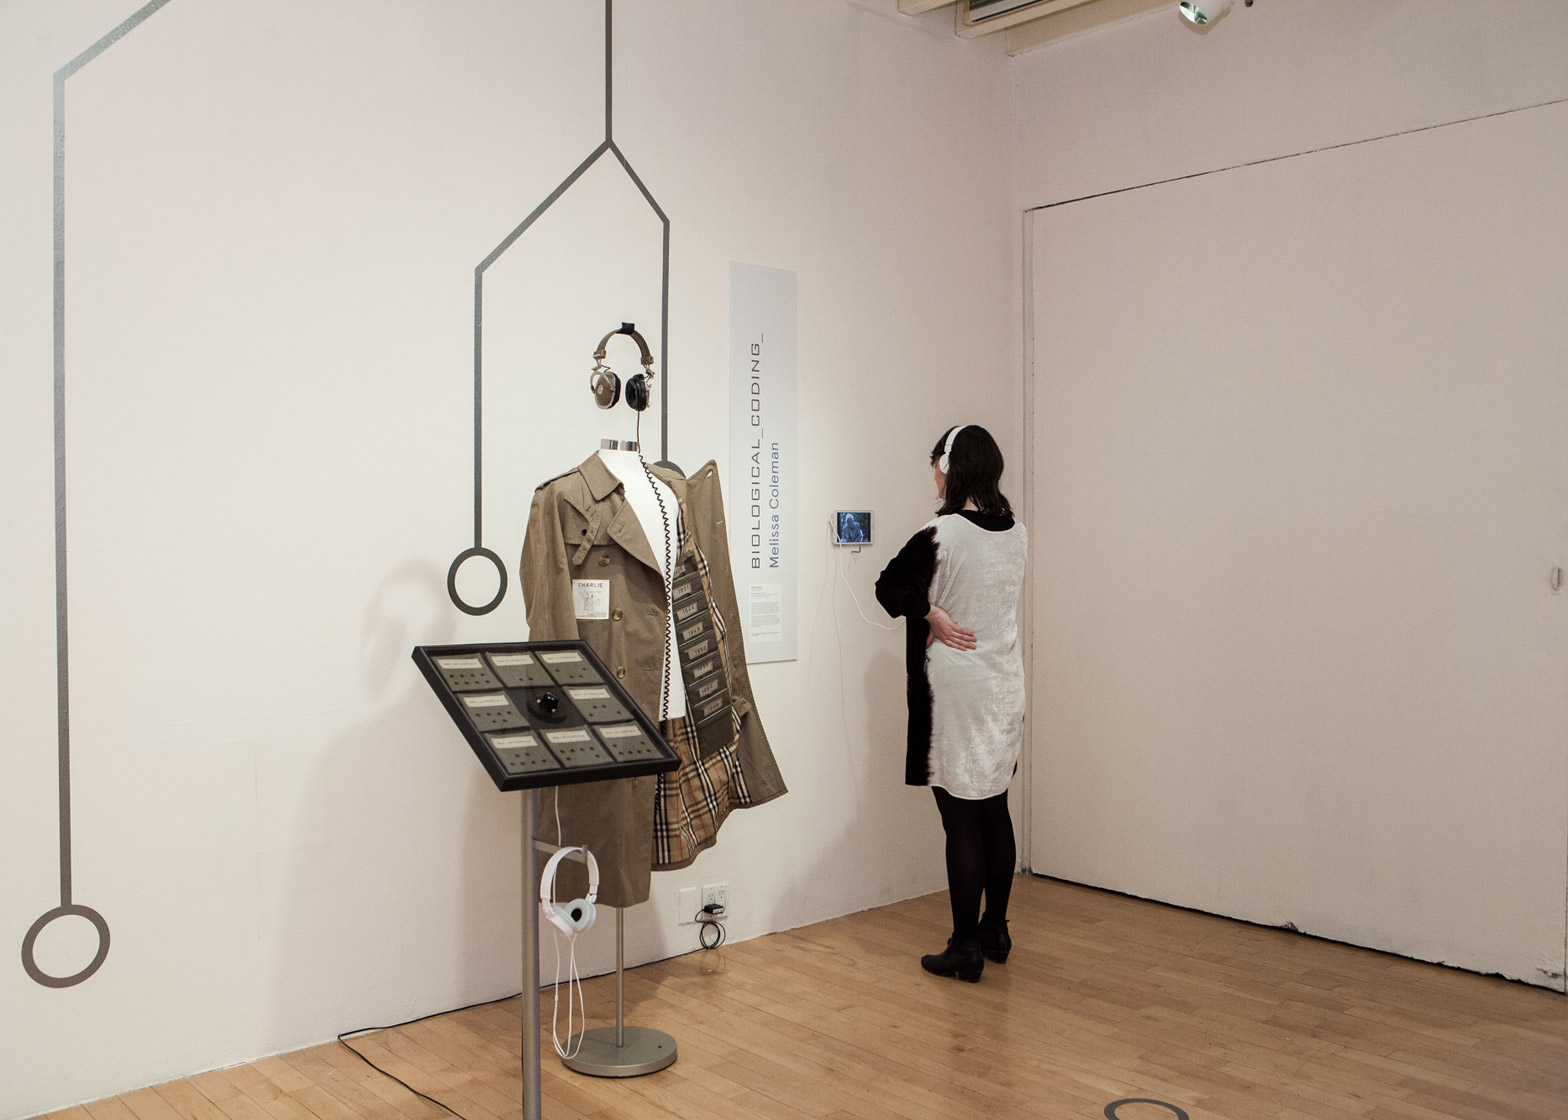 Coded Couture fashion exhibition at Pratt Institute in New York, USA